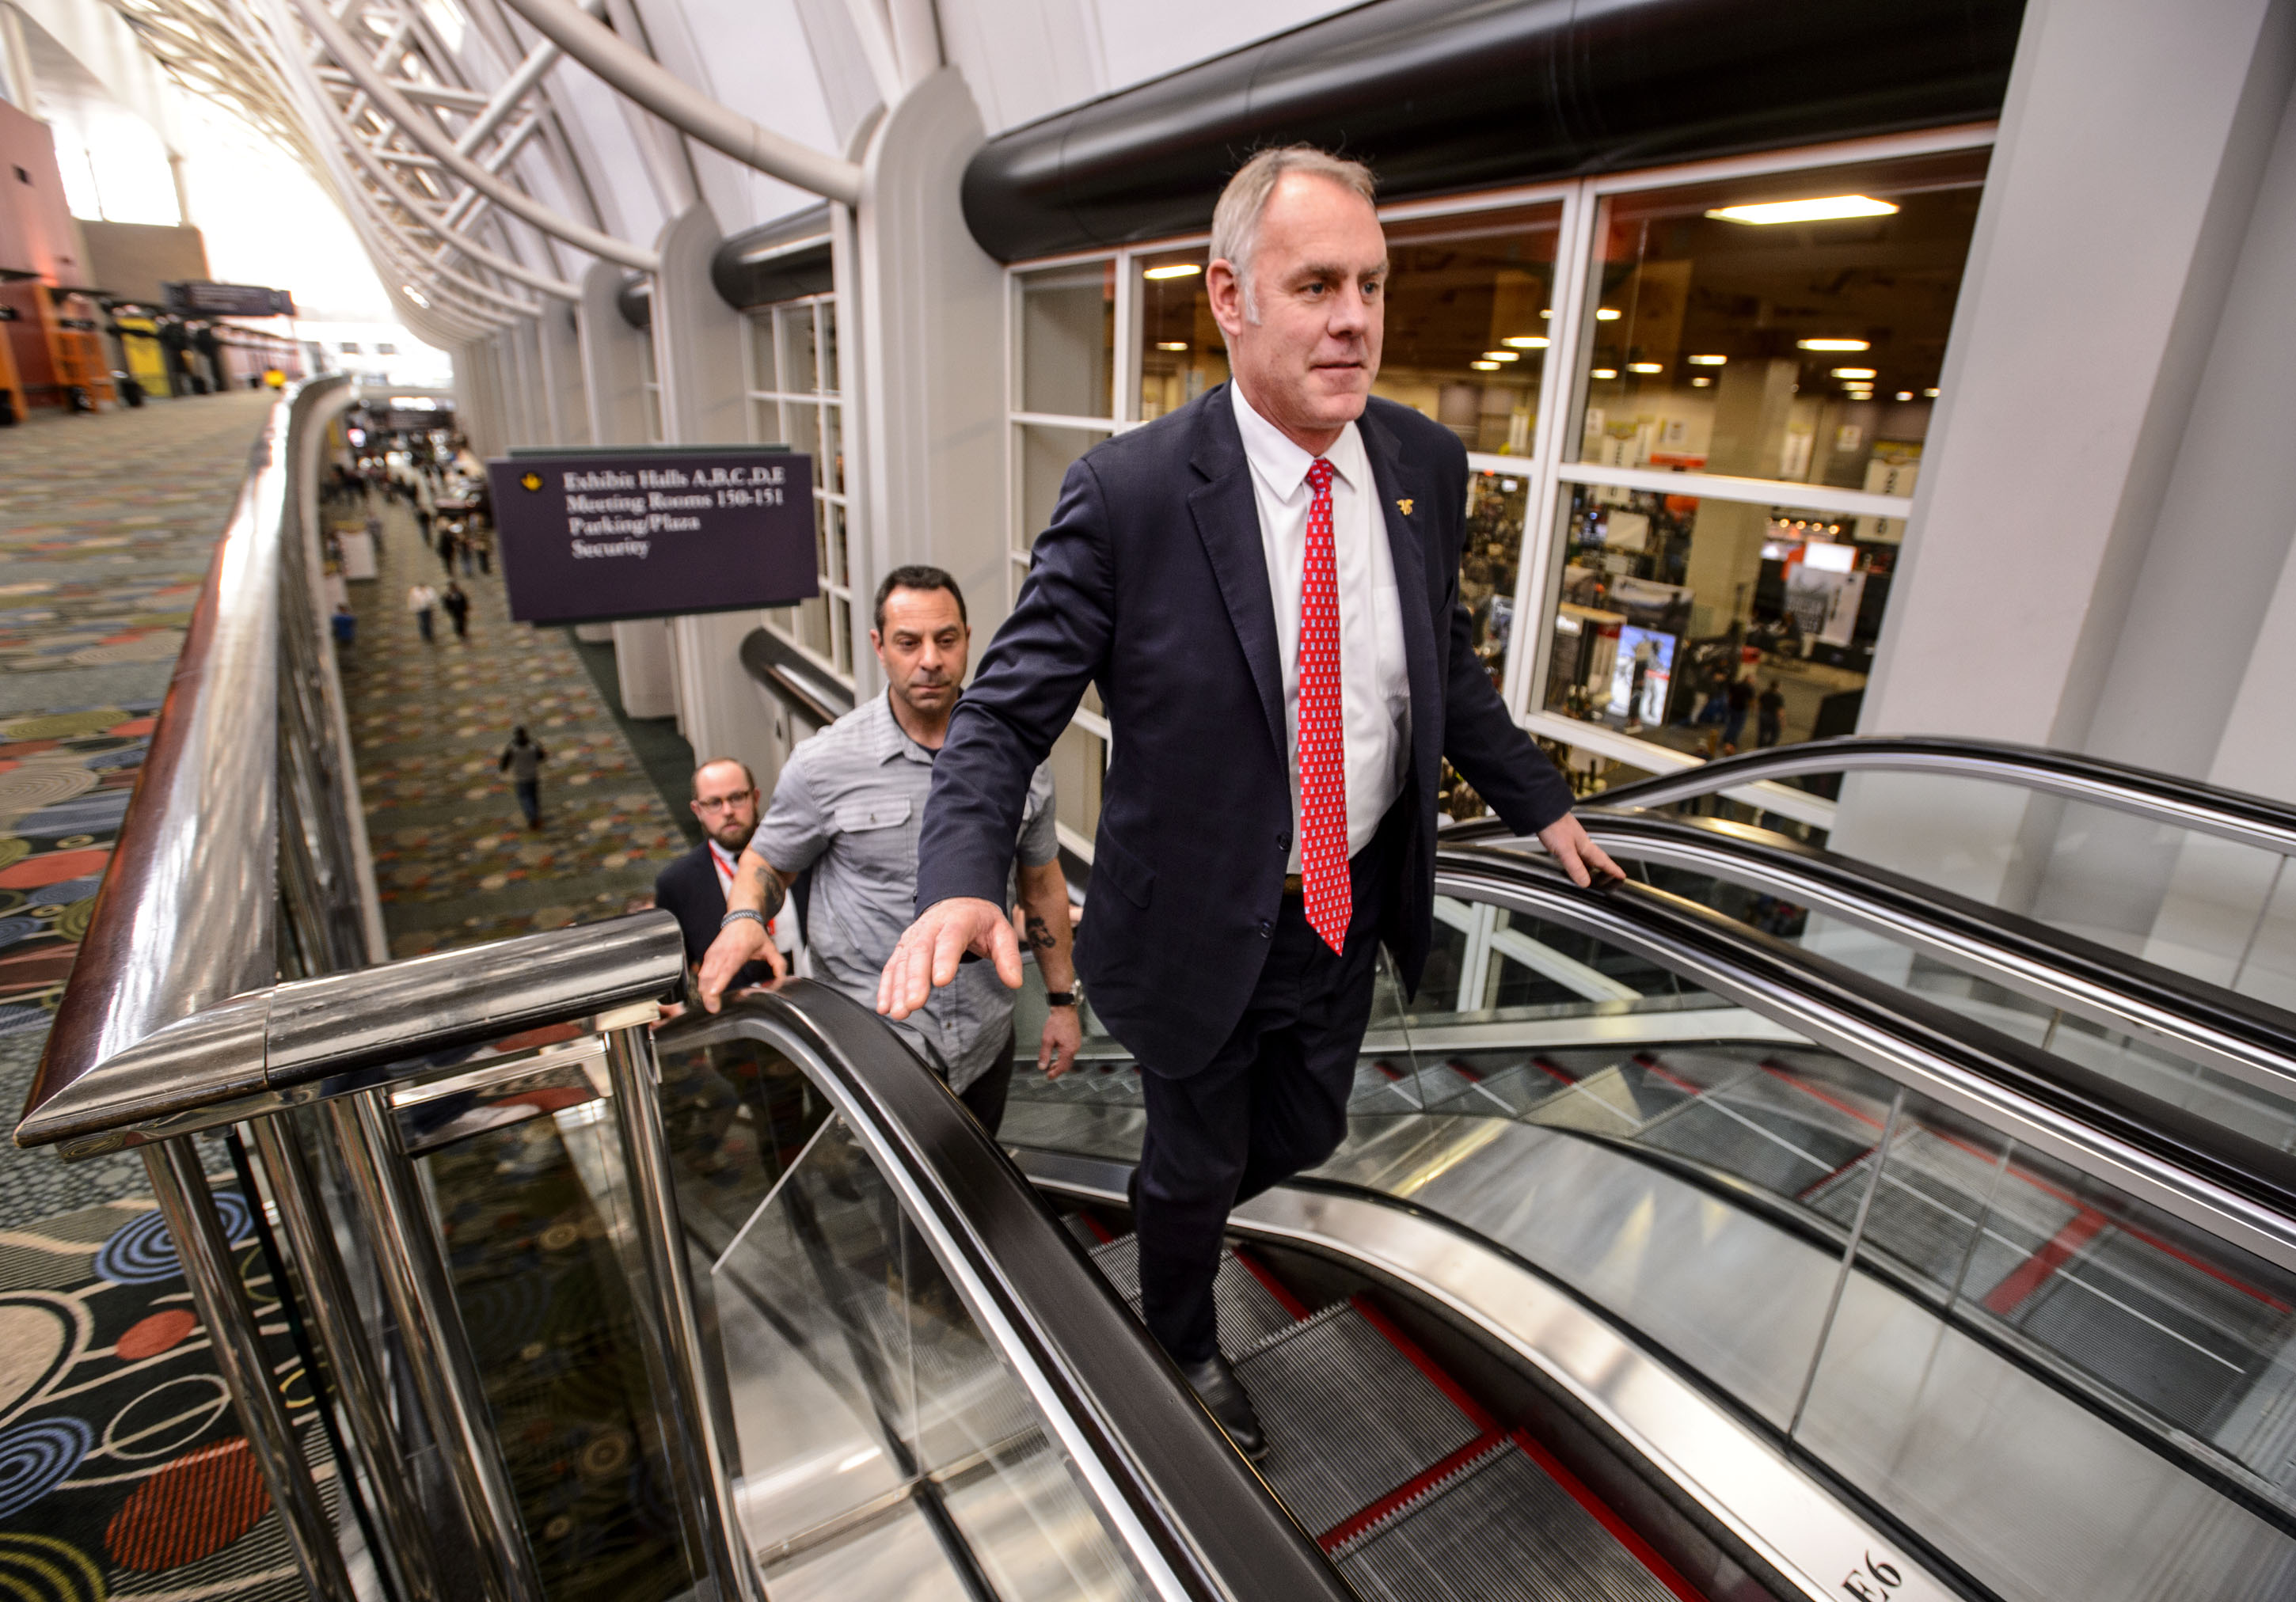 (Steve Griffin  |  The Salt Lake Tribune)  U.S. Secretary of the Interior Ryan Zinke walks through the Salt Palace Convention Center where he was scheduled to speak at the Western Hunting and Conservation Expo in Salt Lake City on Friday, Feb. 9, 2018.